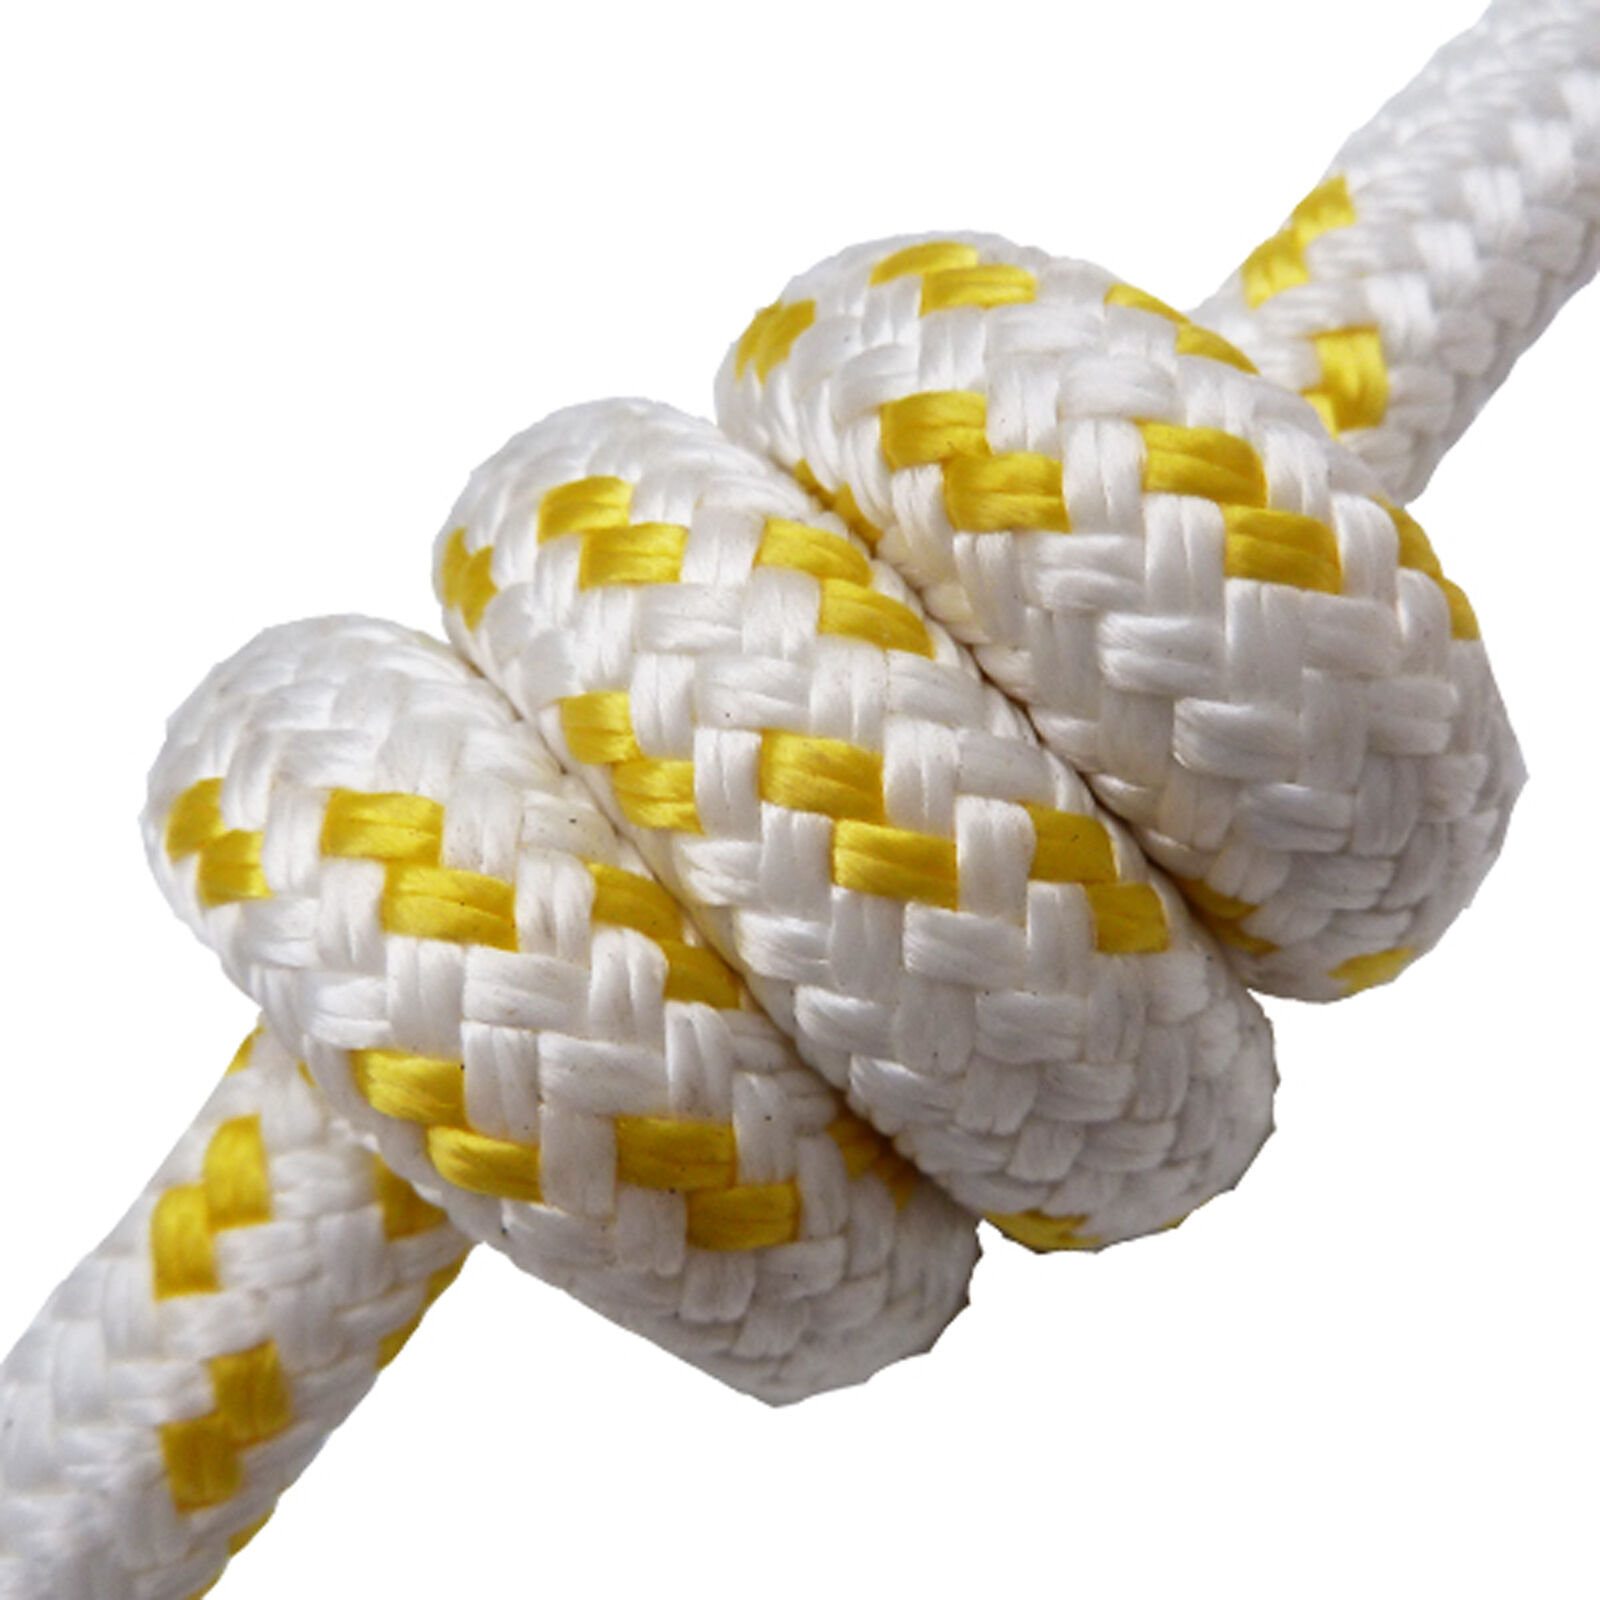 Rope  6mm Dyneema Braid MAINSHEET. High Spec, Low Stretch Rope for Boats